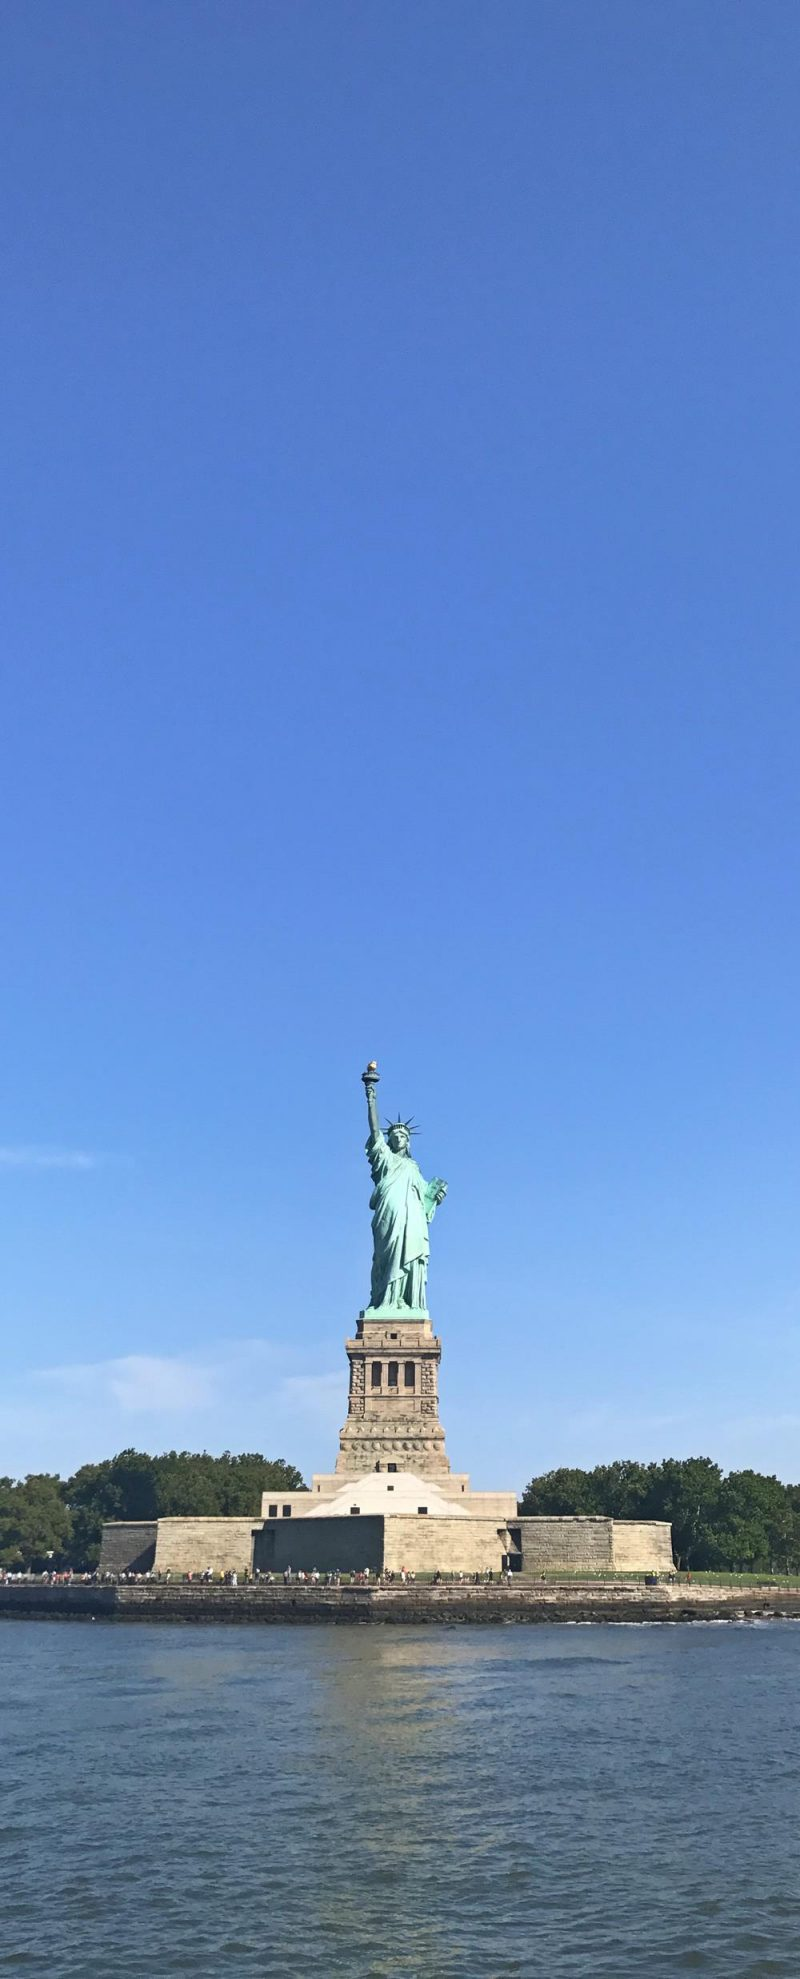 The statue of liberty with bright blue sky in the background